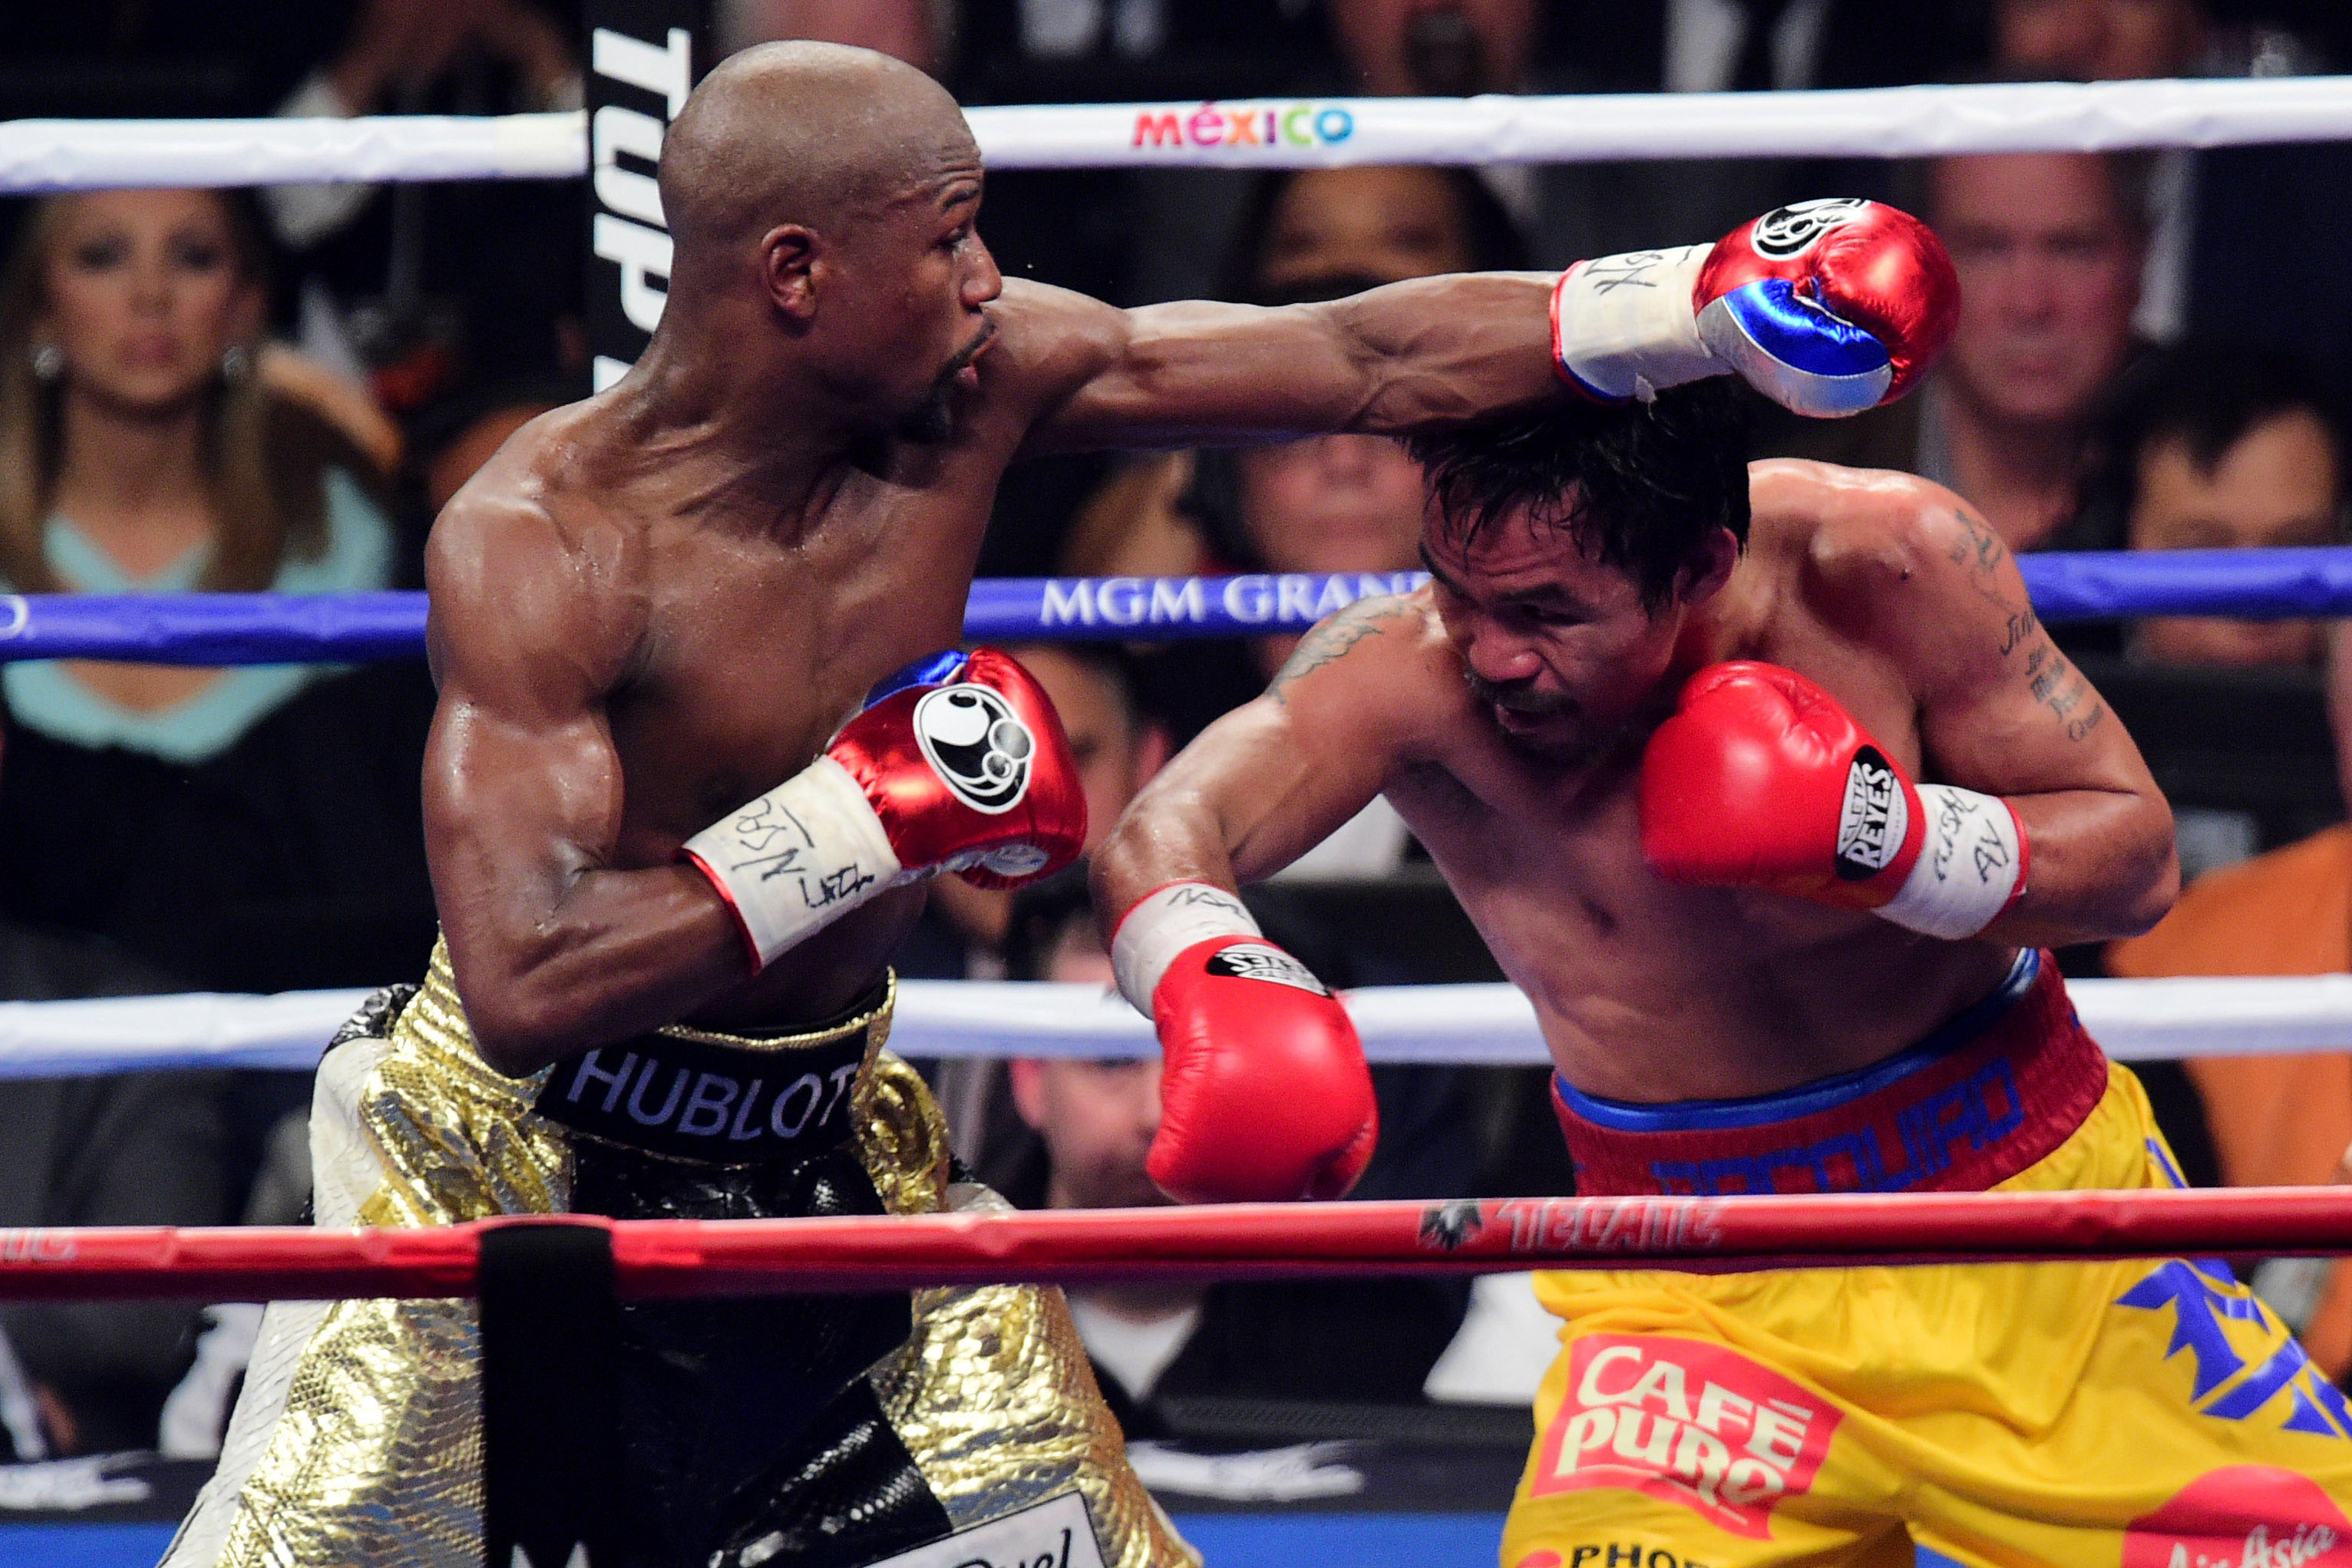 Mayweather vs pacquiao fight date in Australia